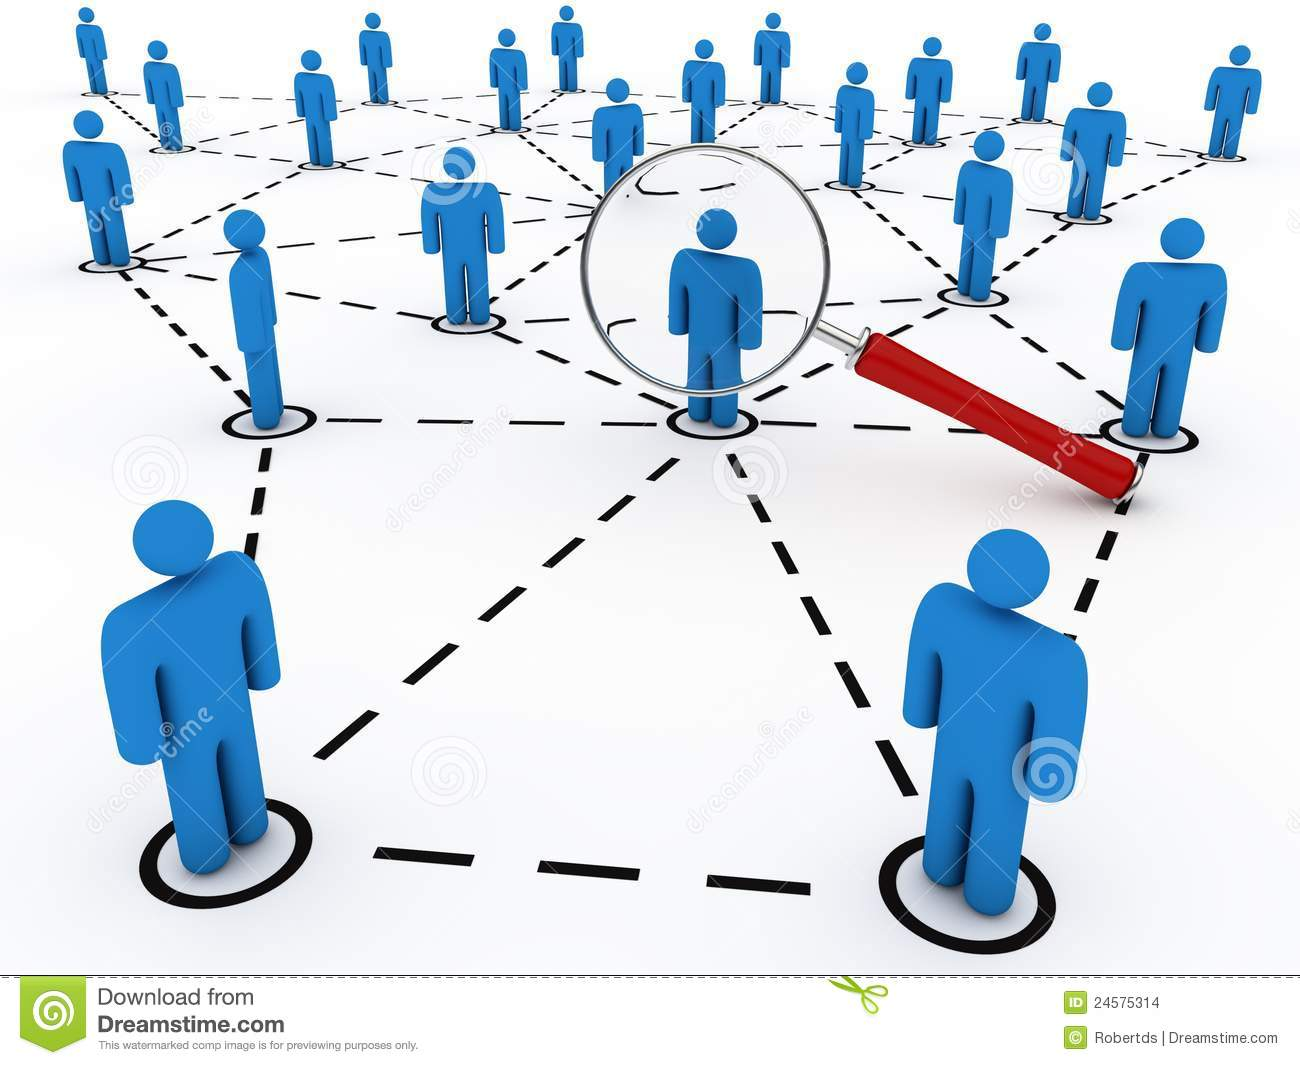 Social networking sites: friend or foe?